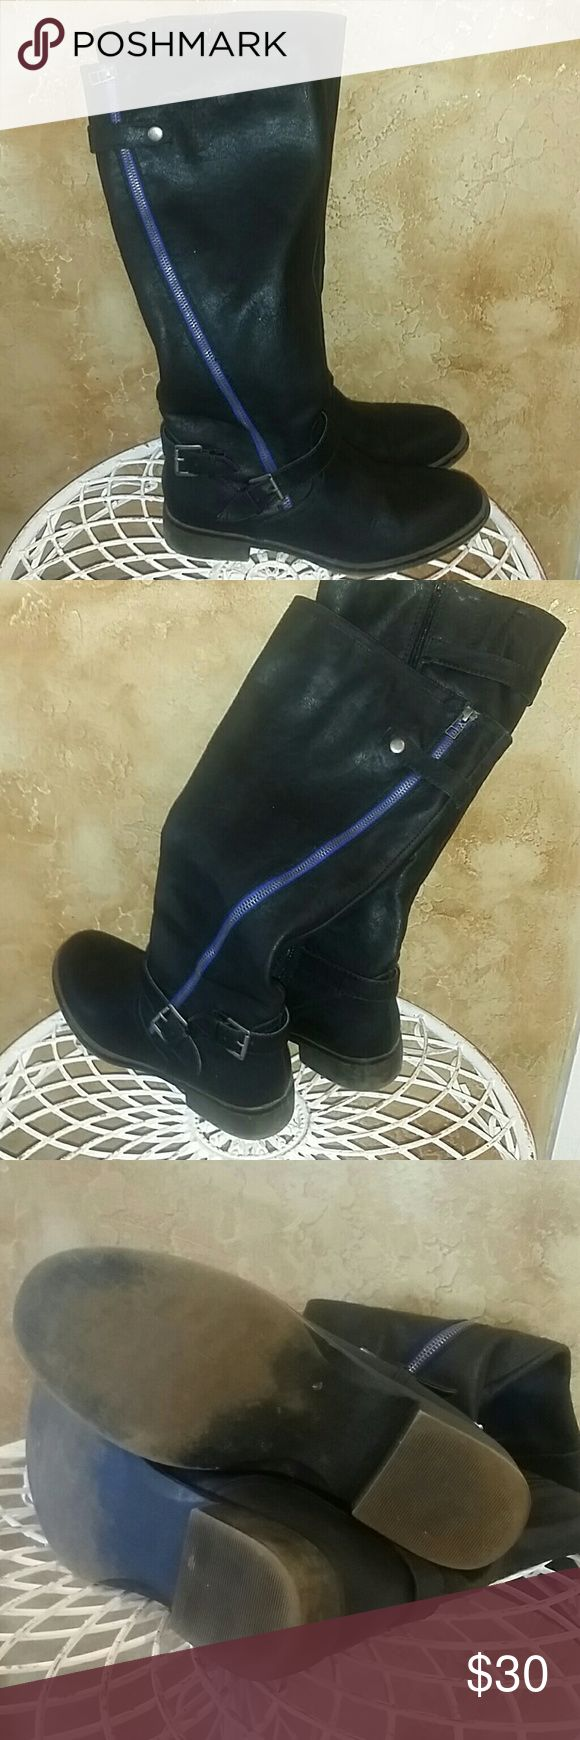 "JUSTFAB KNEE HIGH BOOTS Very cool design with their blue zipper, buckles and ""weathered"" look heel. These are in good condition! Heels are not worn out, no rips/tears, etc. Very nice boots to ring in the fall/winter seasons and paired with your favorite jeans! I'm 5'9 and these almost go up to my knees. Will fit a larger calf....mine are muscular. ;) JustFab Shoes Winter & Rain Boots"